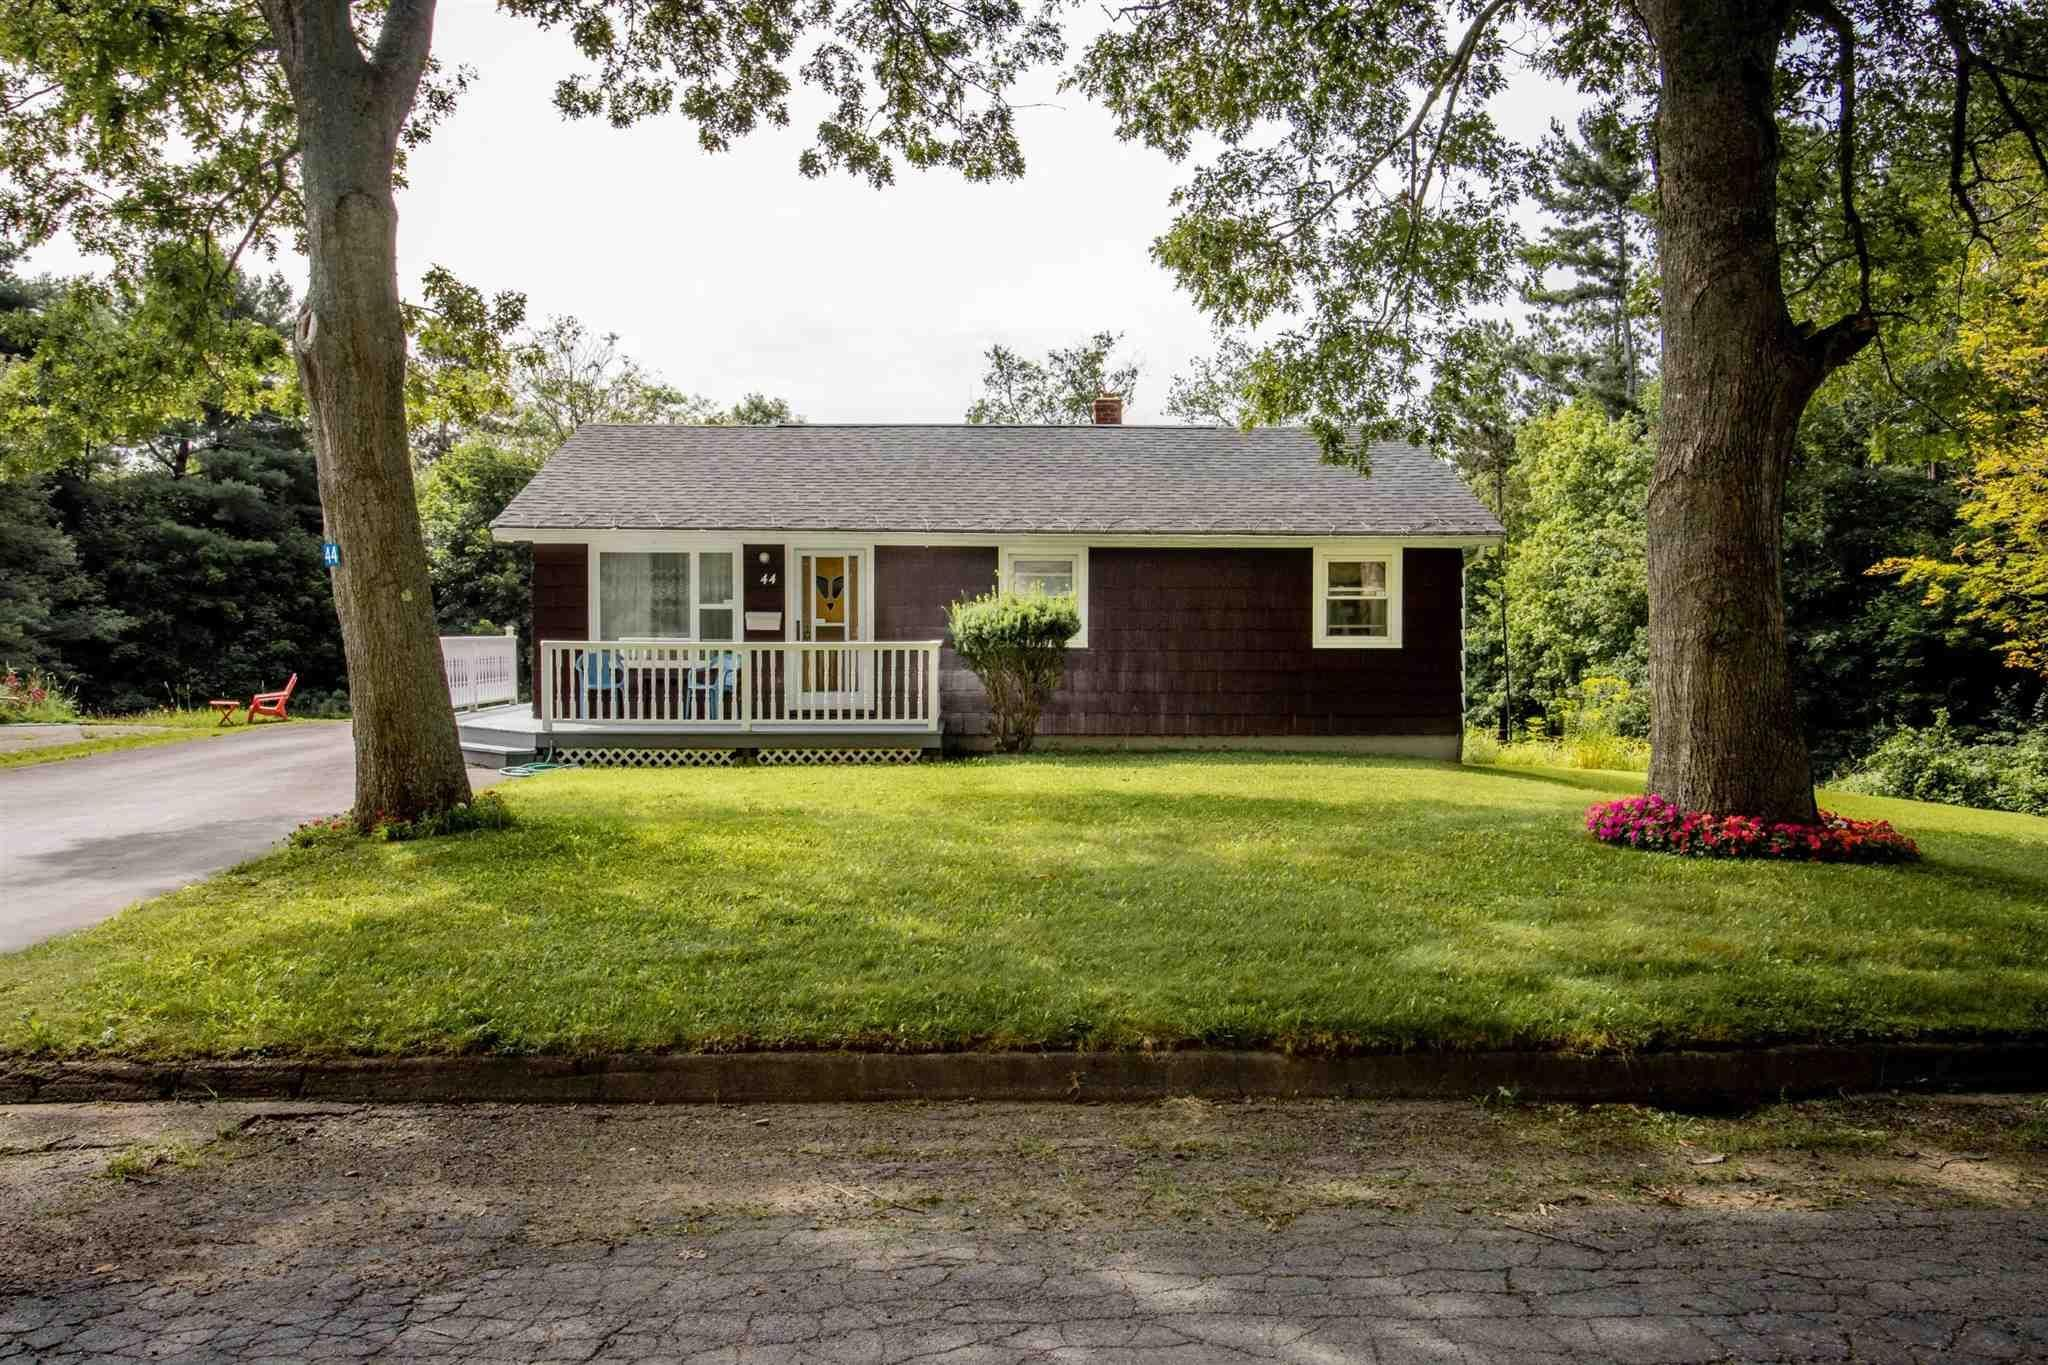 Main Photo: 44 Redden Avenue in Kentville: 404-Kings County Residential for sale (Annapolis Valley)  : MLS®# 202120593